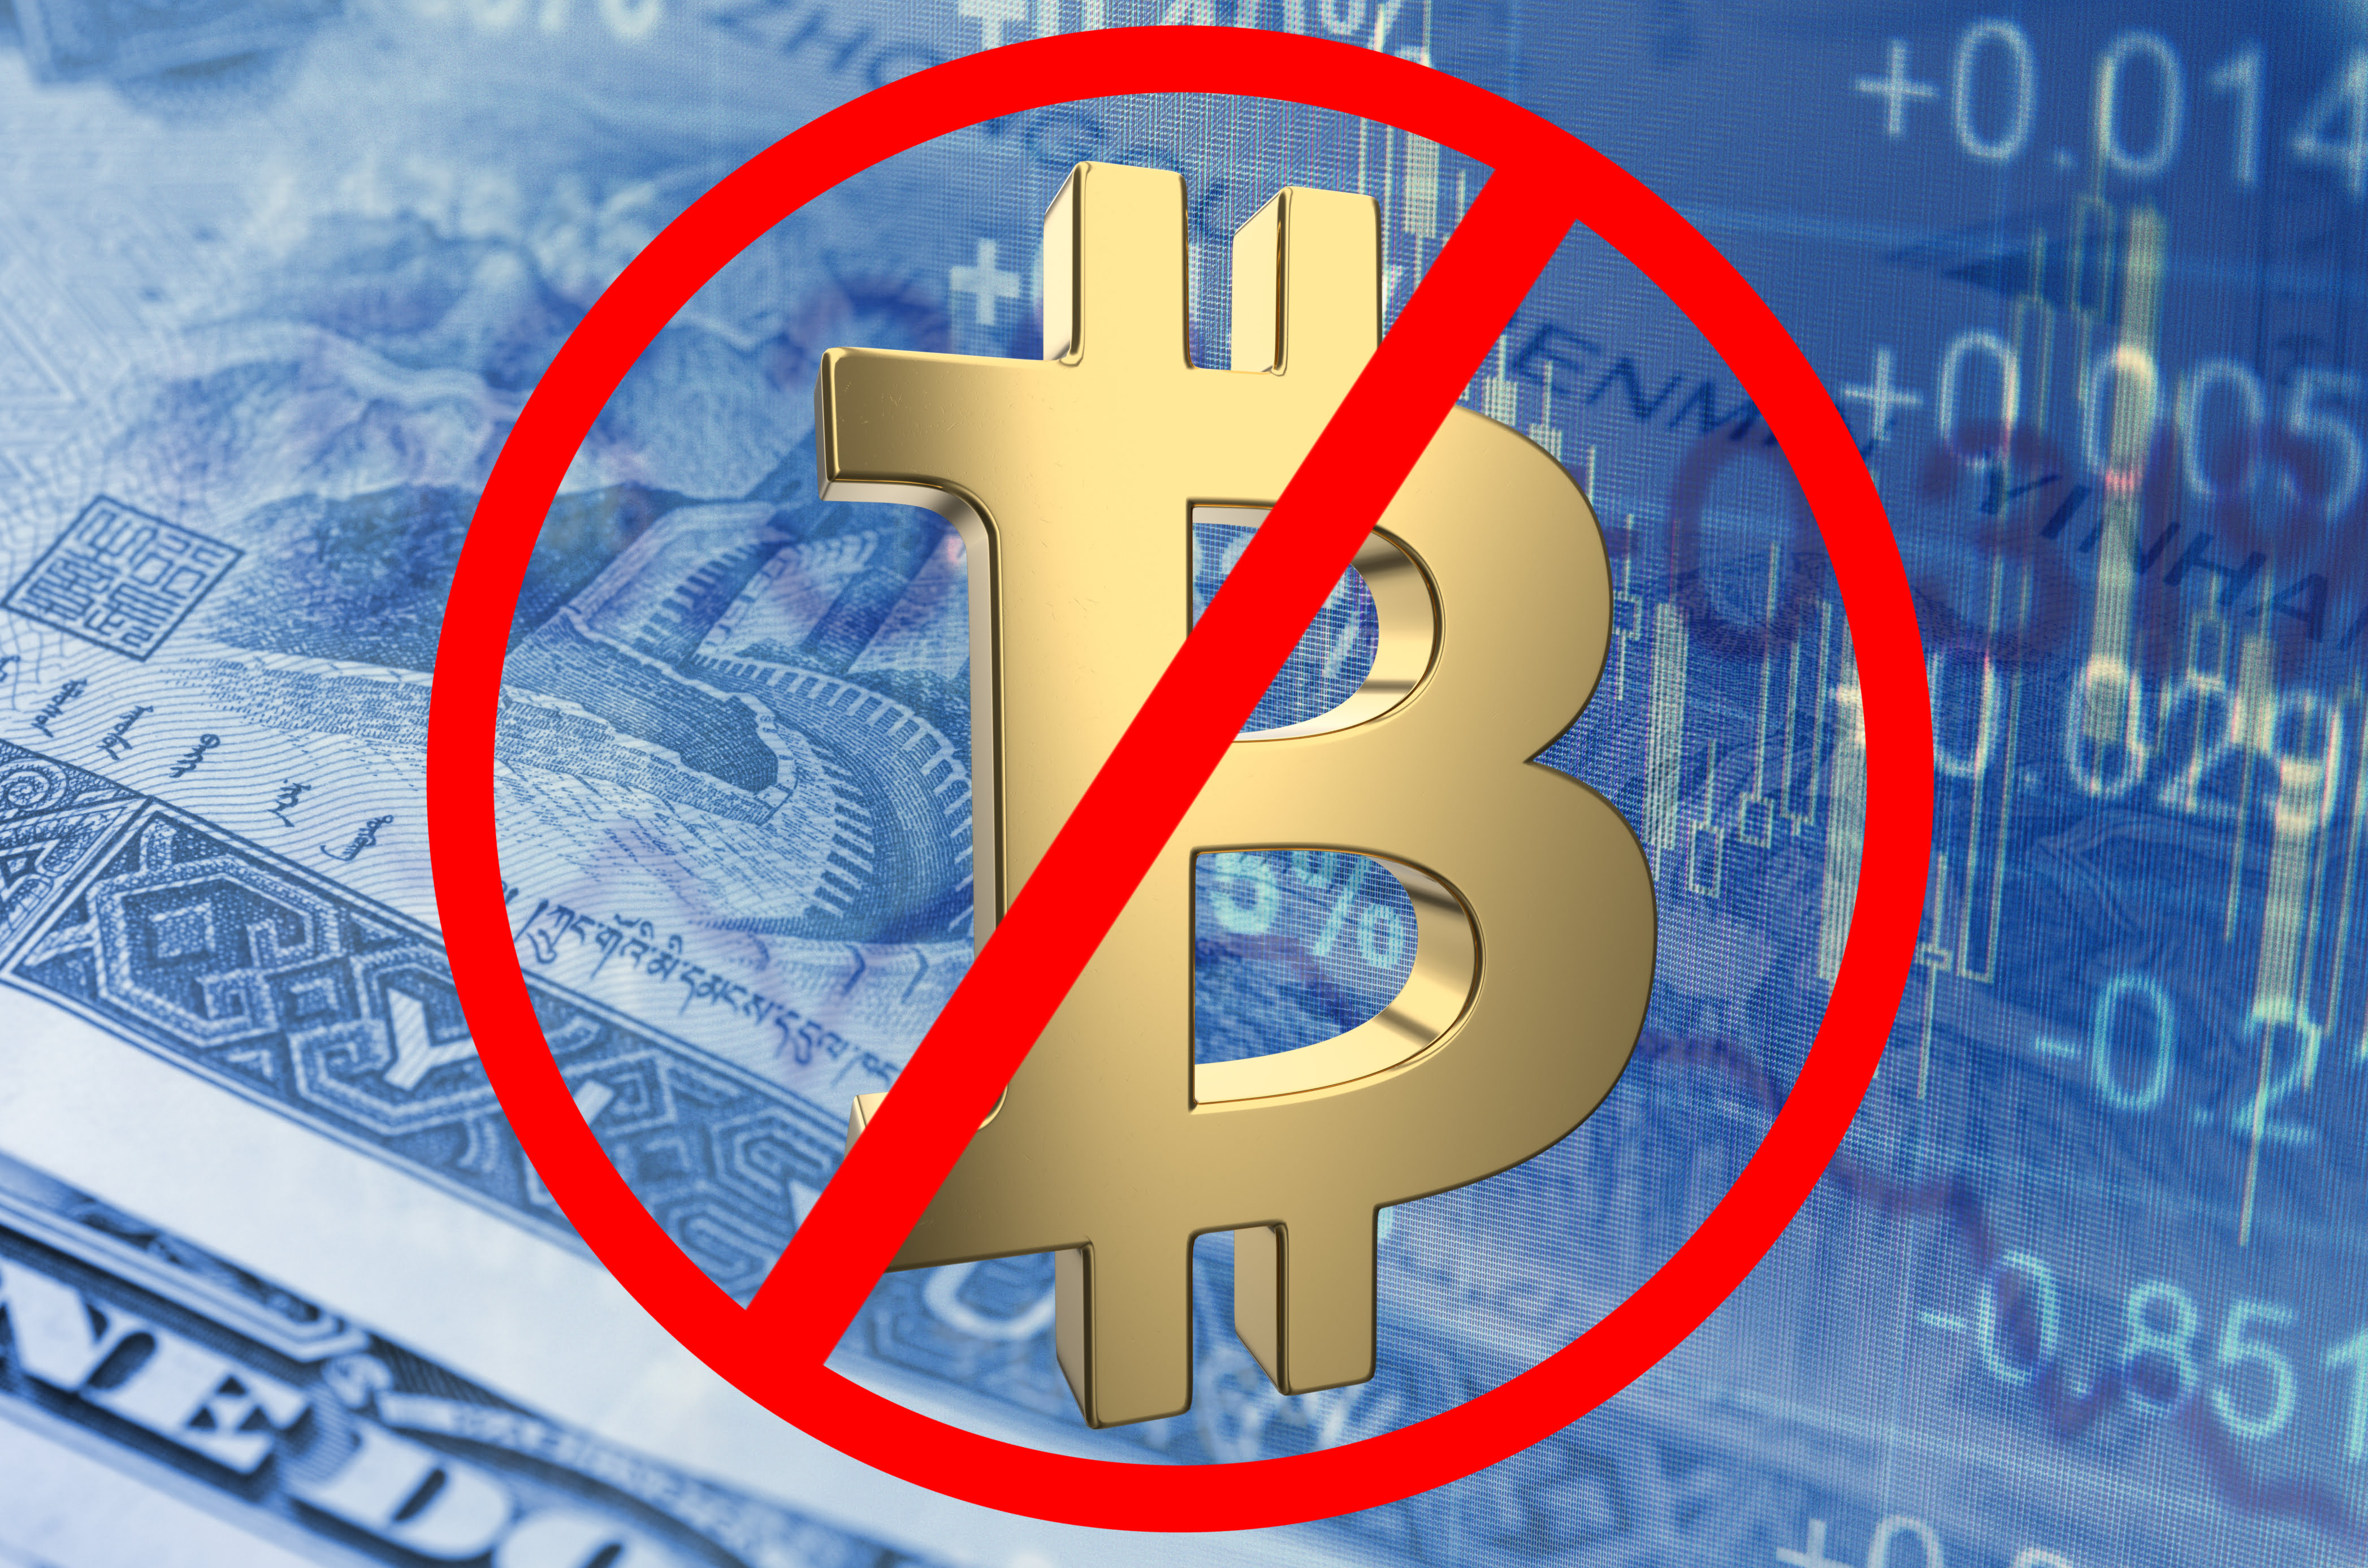 Its Official: Indian Government Wants to Ban Bitcoin |